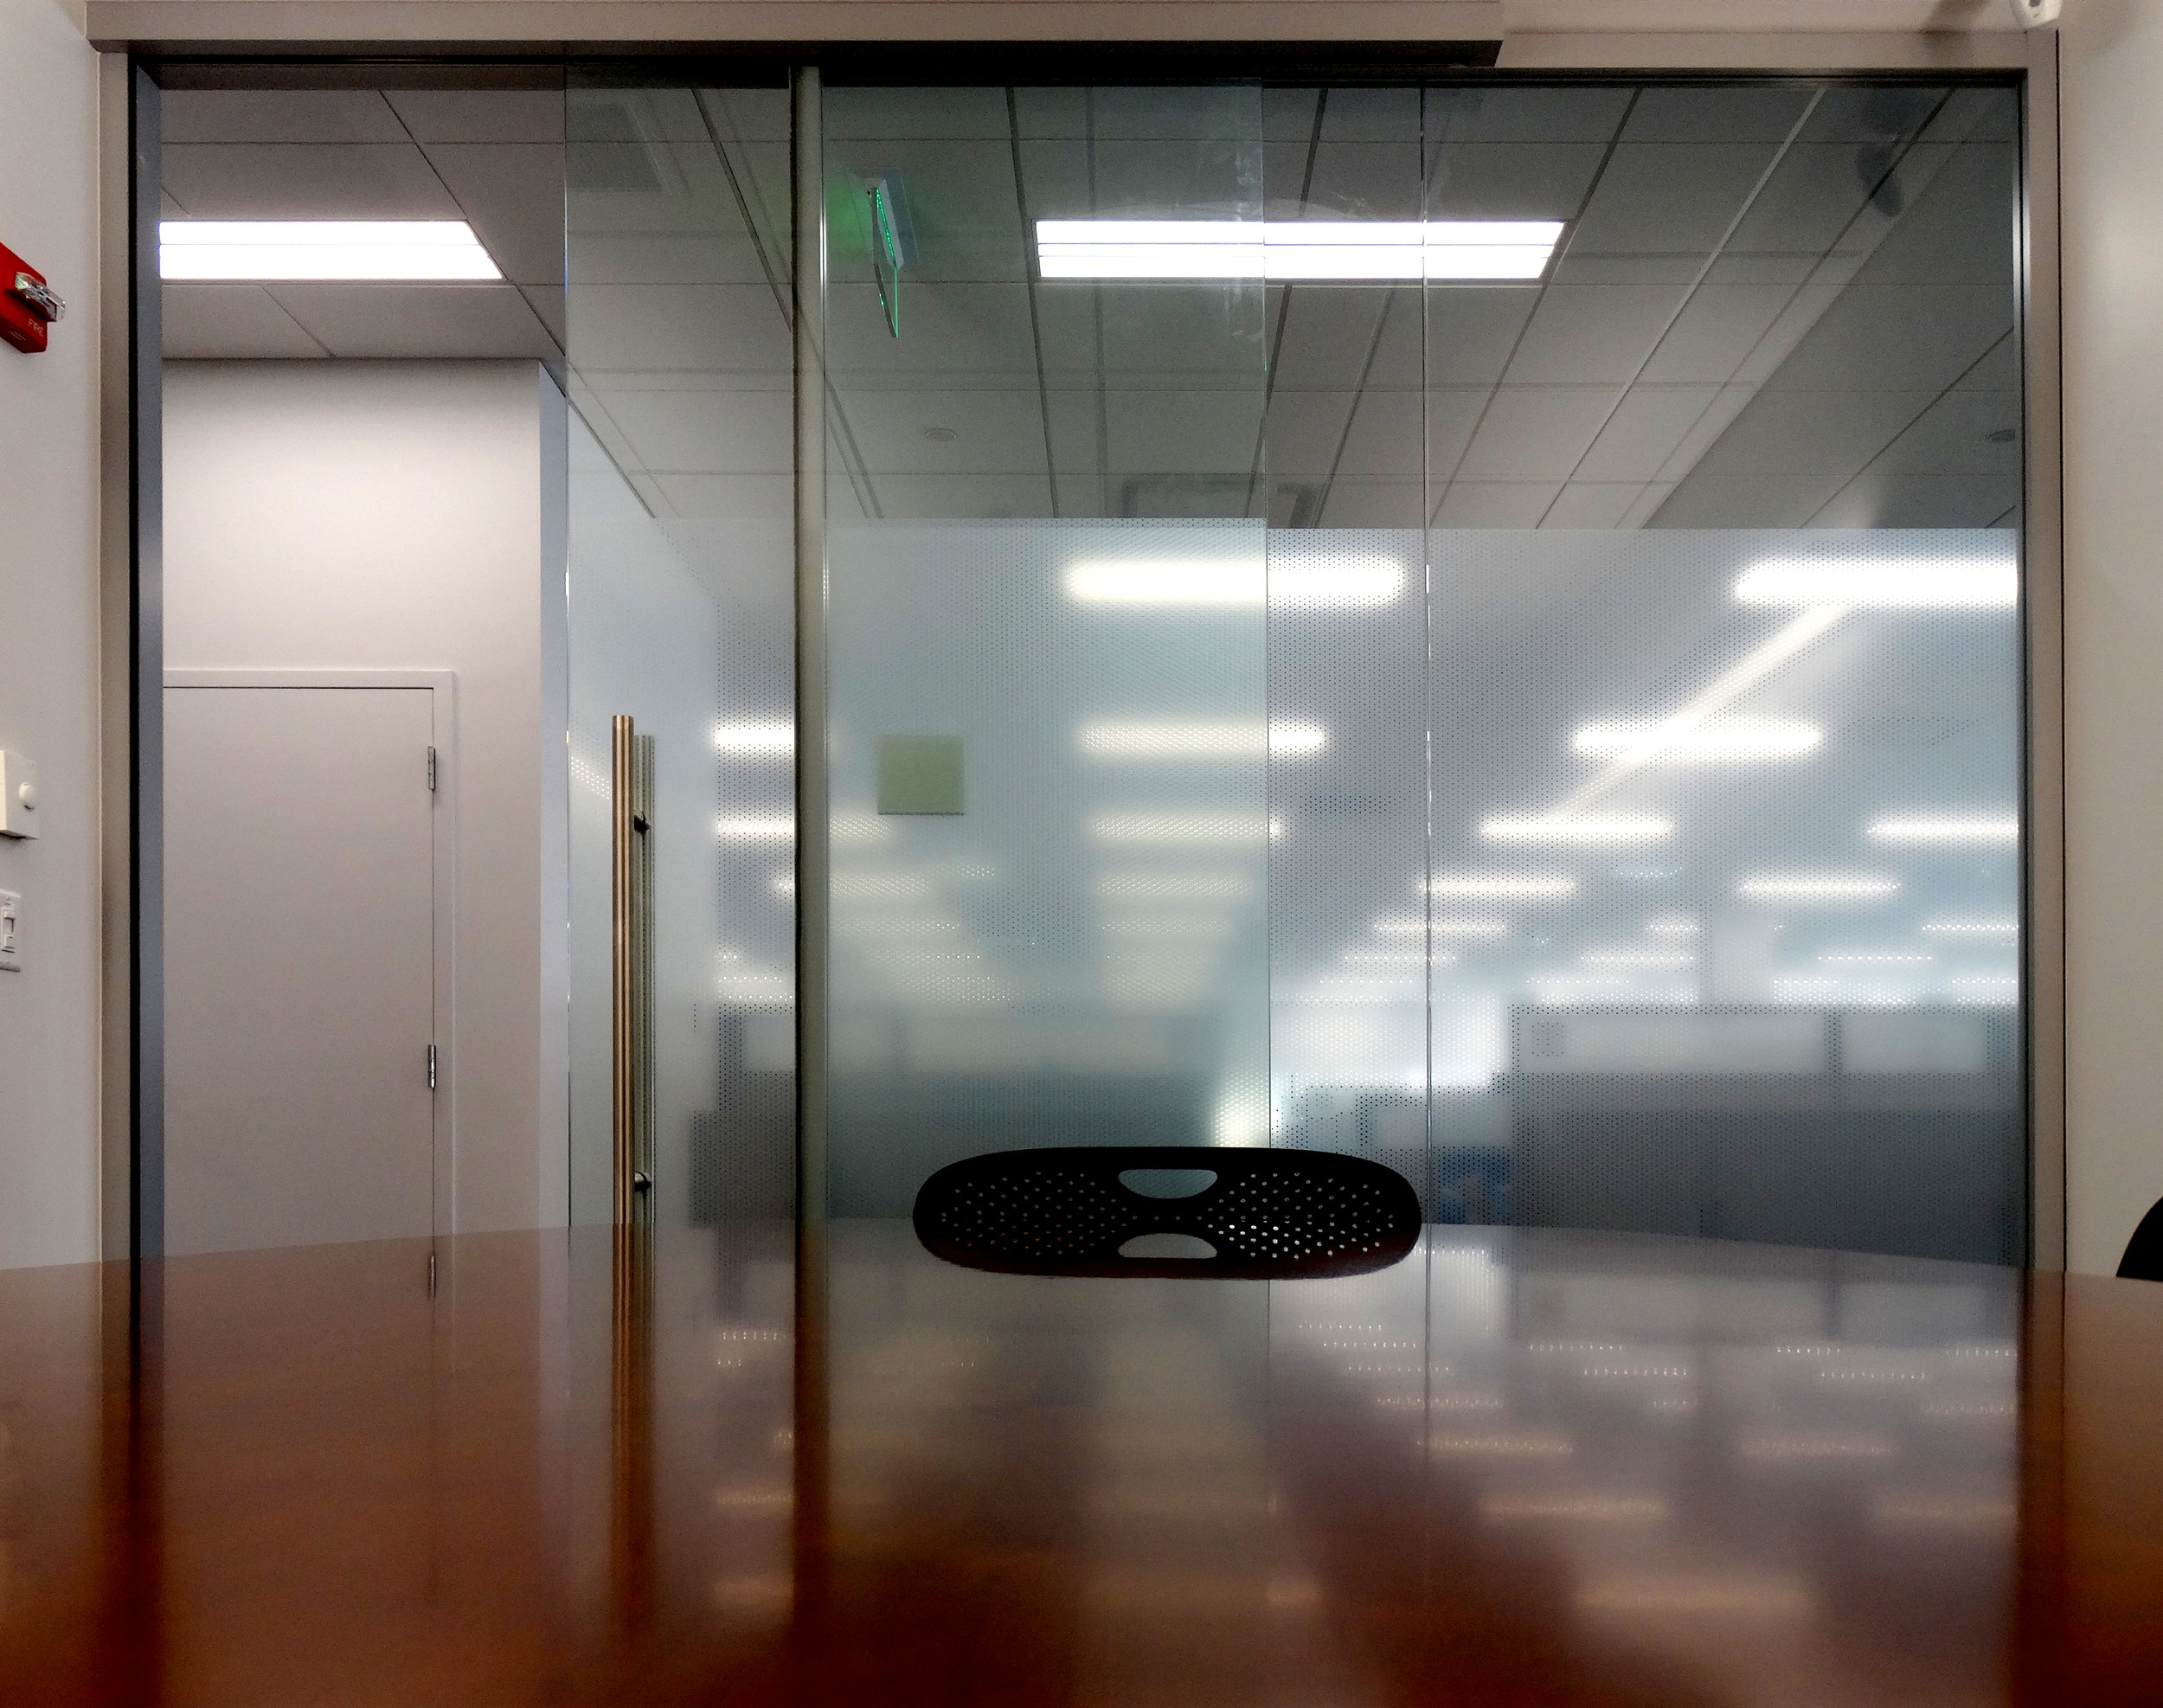 Litespace Frameless Glass Conference Room Wall Sliding Door - Spaceworks AI.jpg